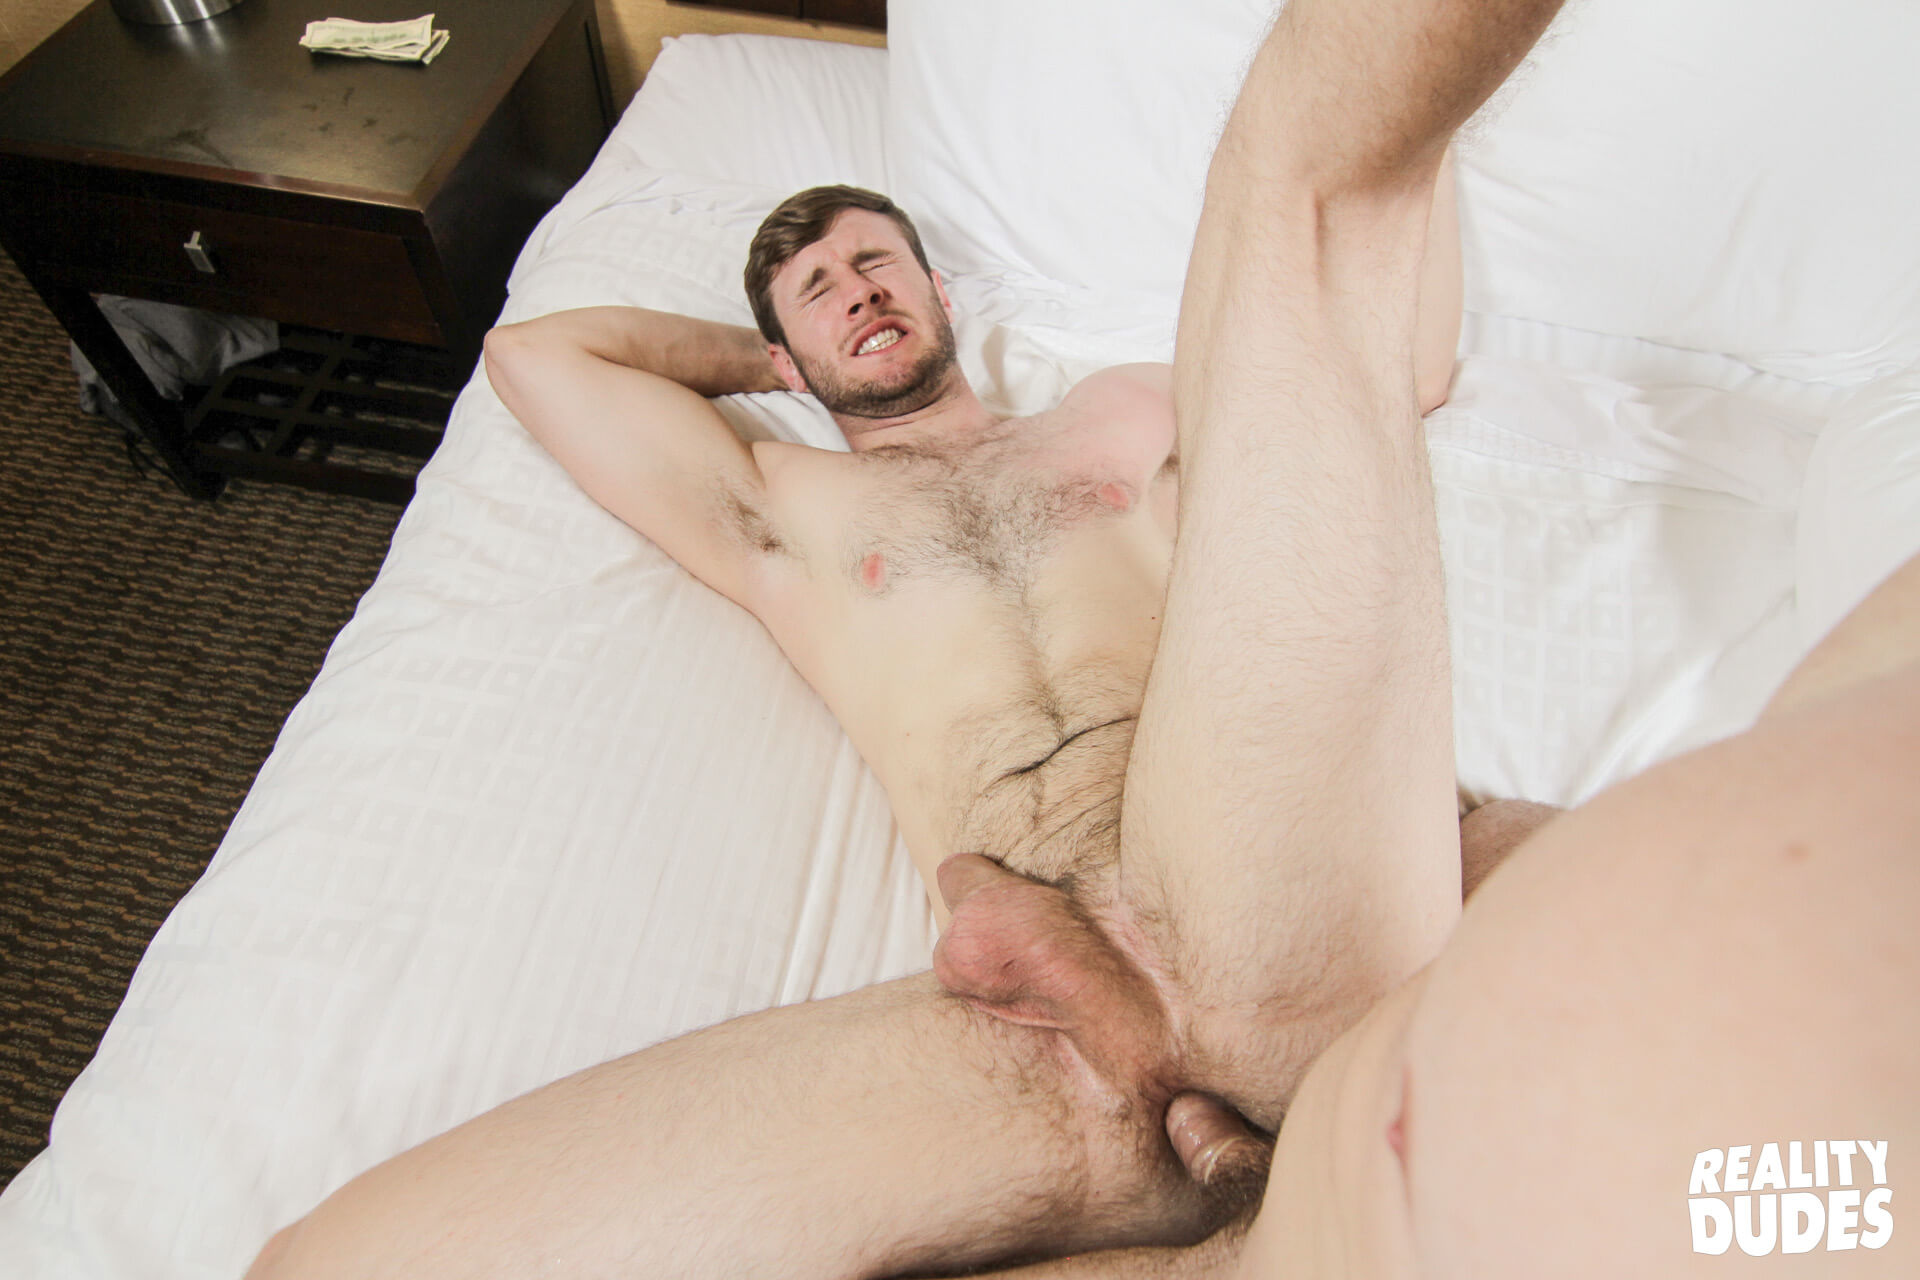 reality dudes str8 chaser cole gay porn blog image 43